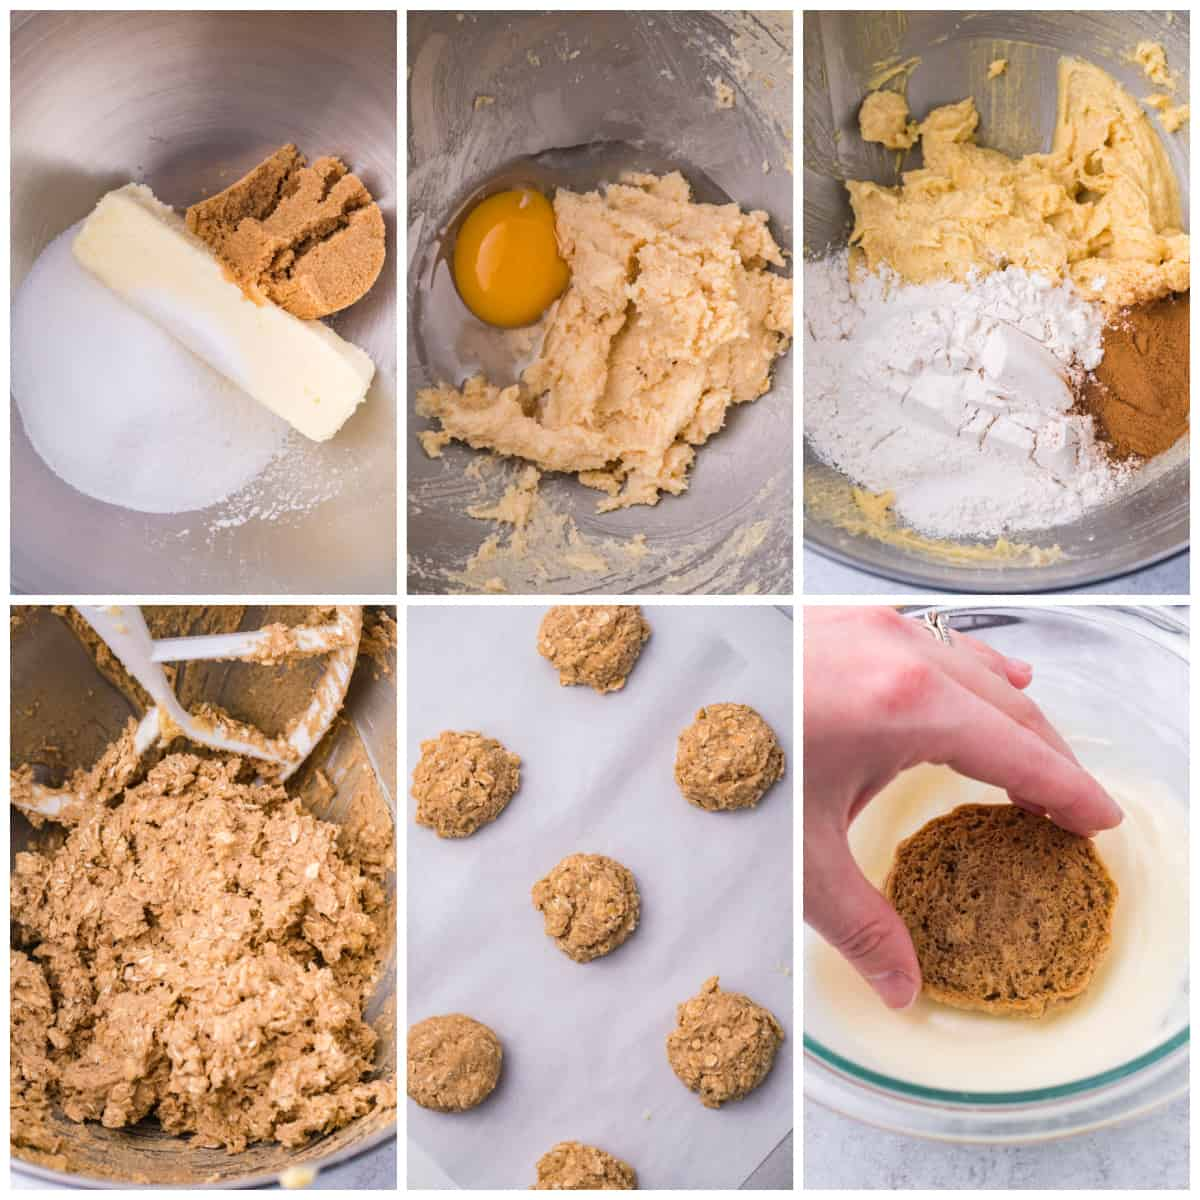 Step by step photos on how to make Iced Oatmeal Cookies